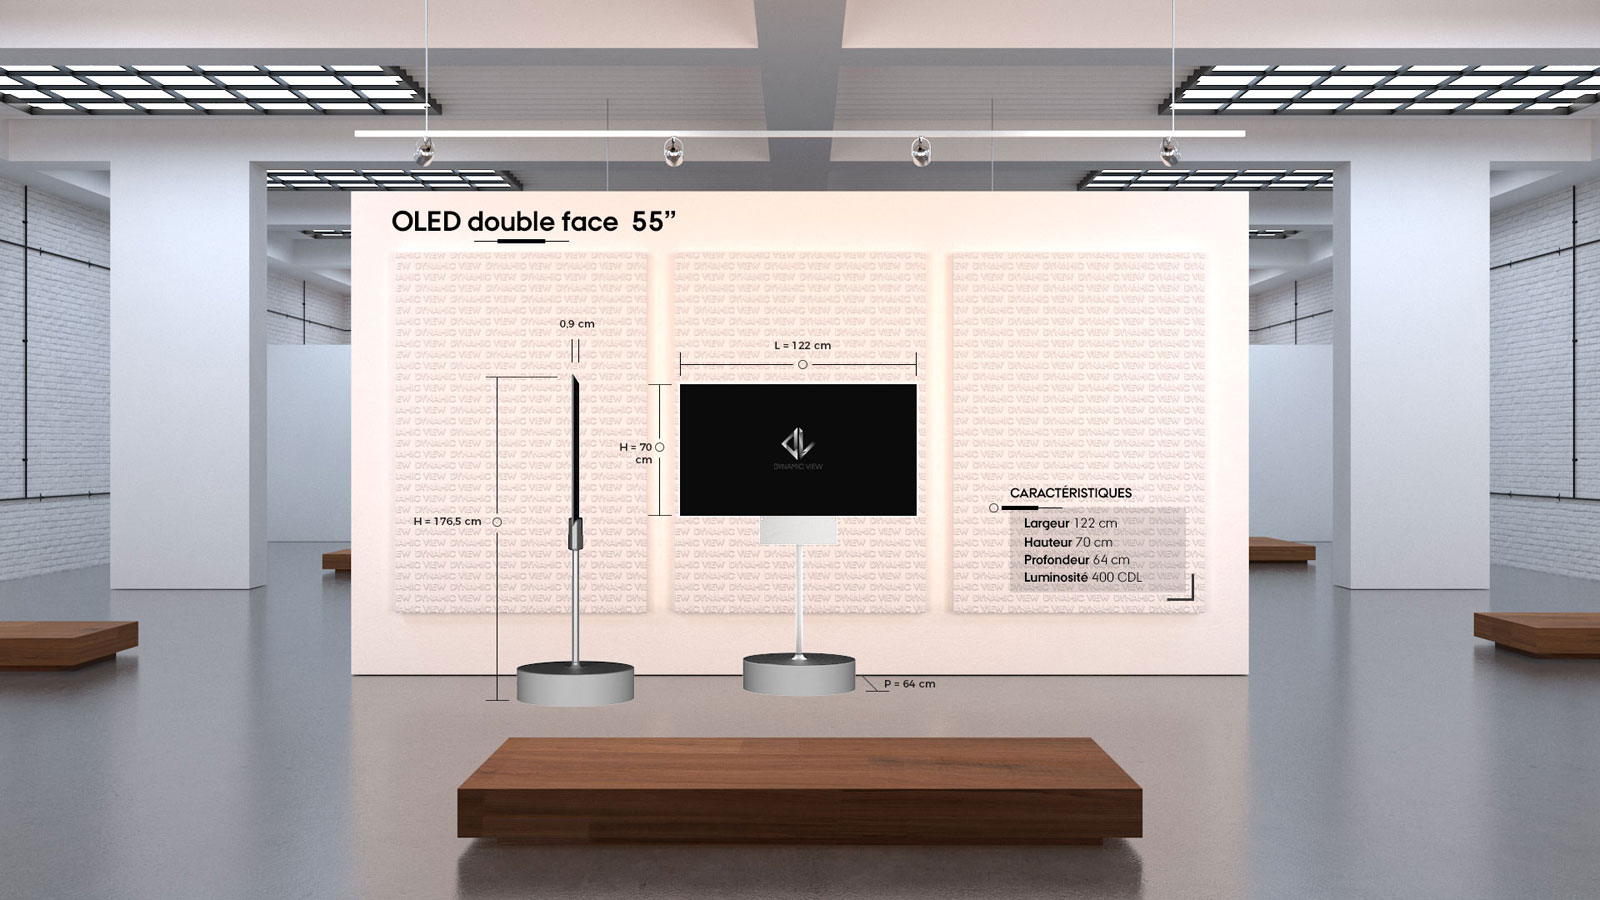 16 OLED 55'' double face